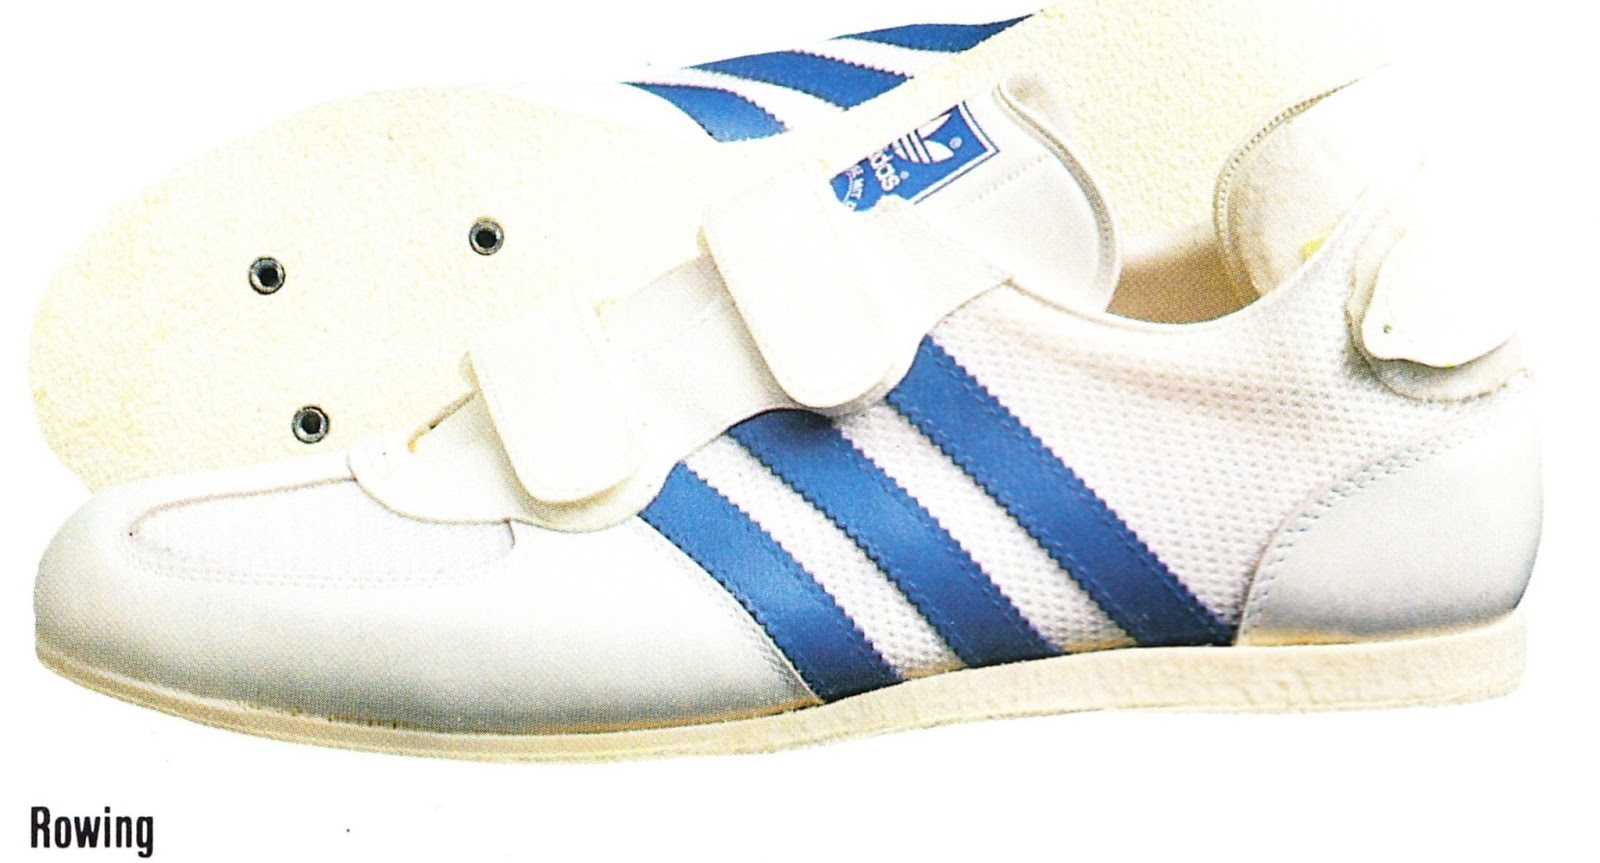 e2fabb381b6d Rowing – adidas commercially introduced a shoe for rowing in 1978 but had  custom modified shoes for the sport from a much earlier date.